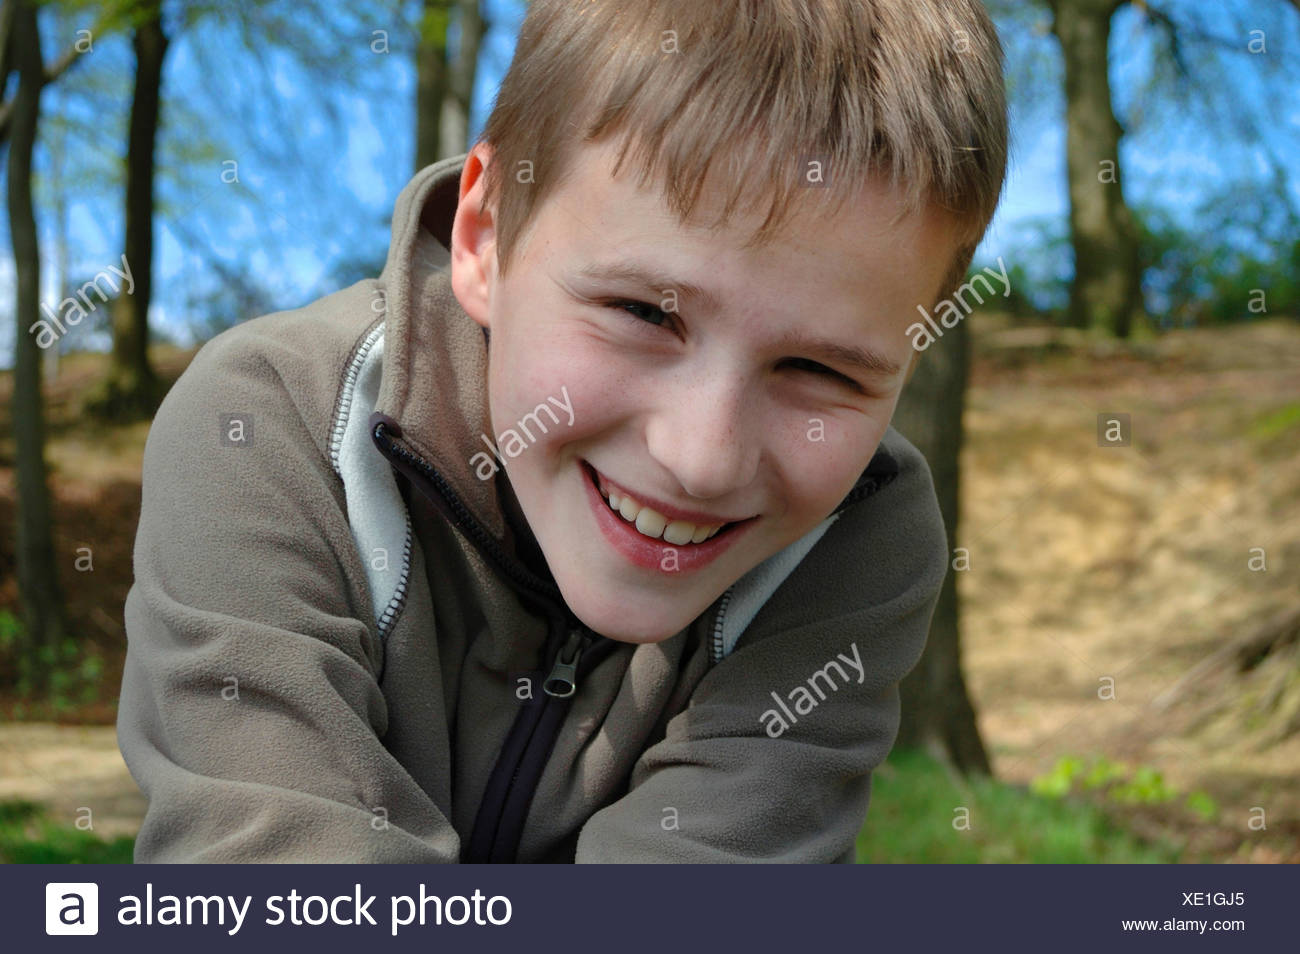 jolly boy in a forest, portrait of a child, Germany - Stock Image